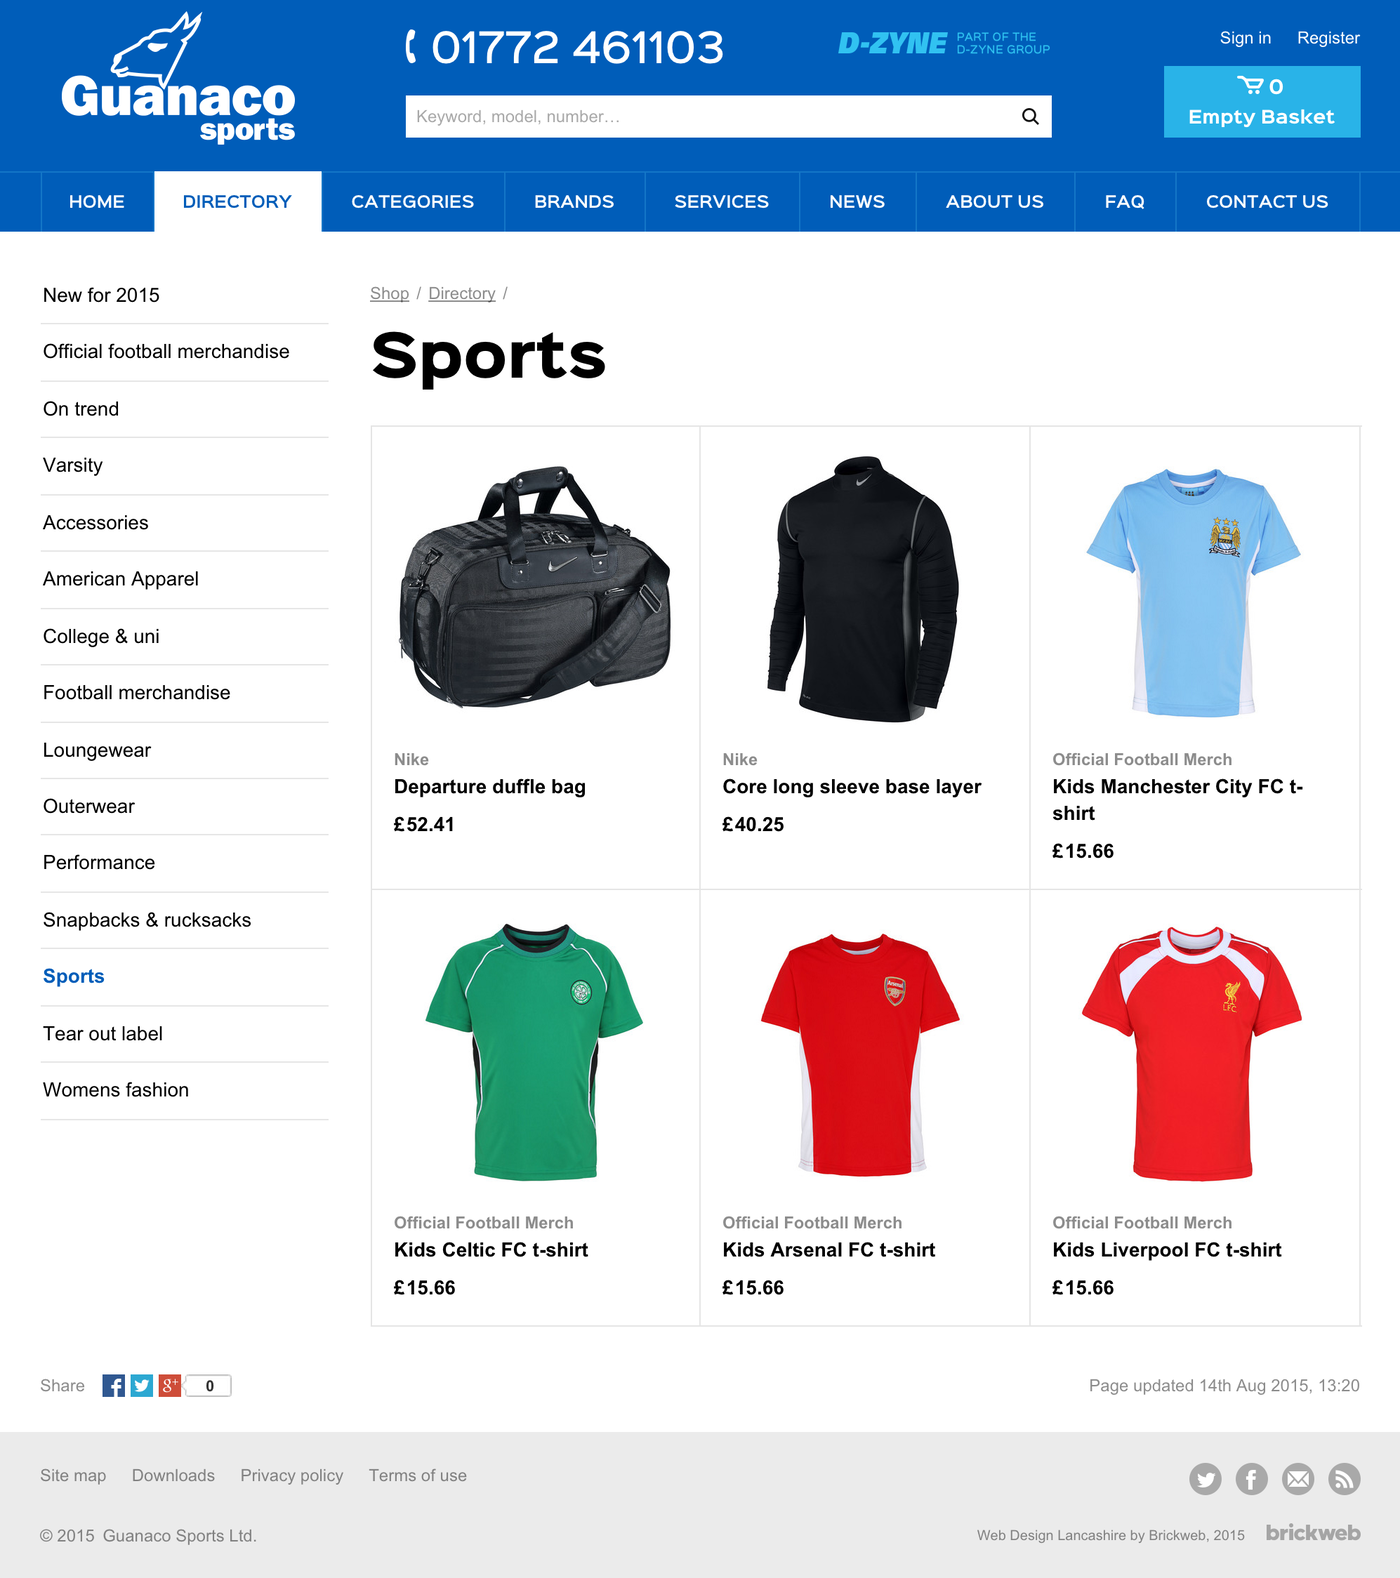 Guanaco Sports Ltd. Products list page